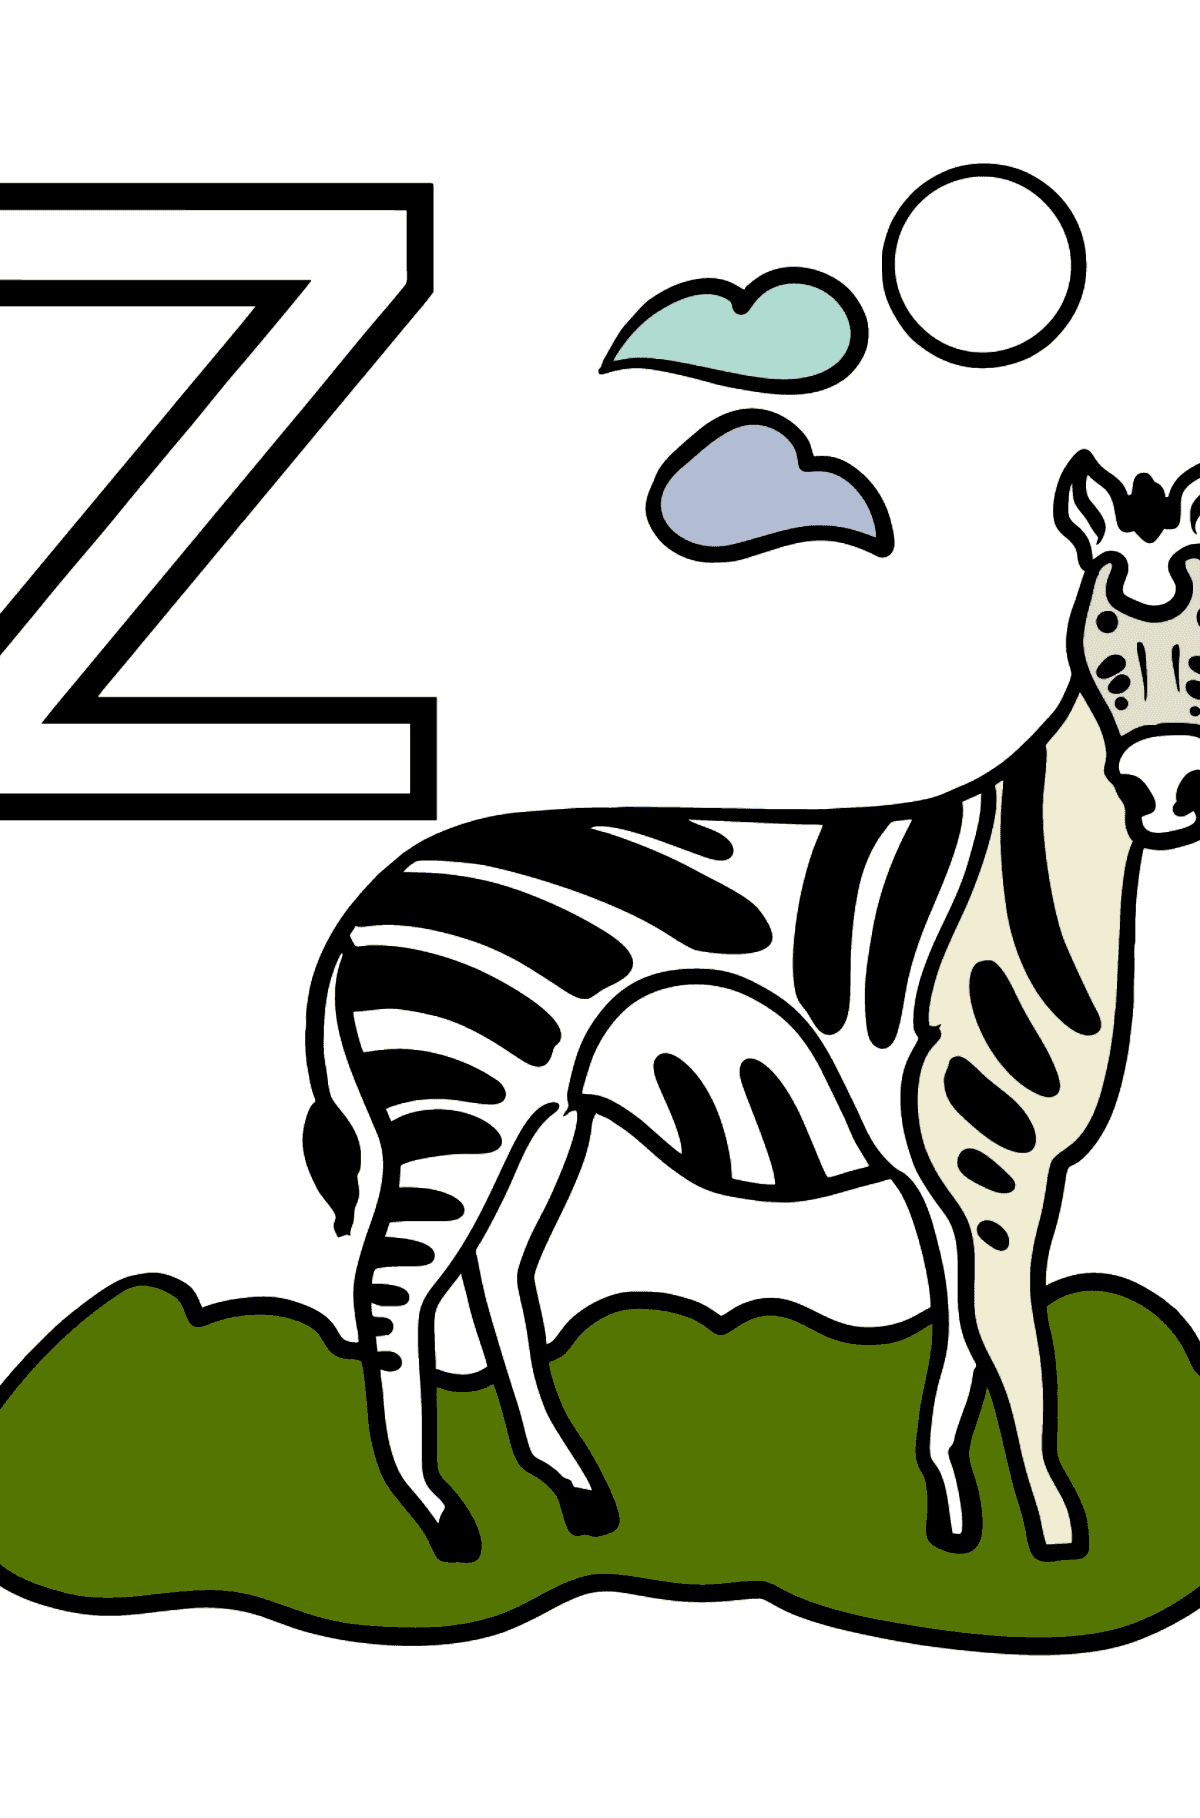 French Letter Z coloring pages - ZÈBRE - Coloring Pages for Kids